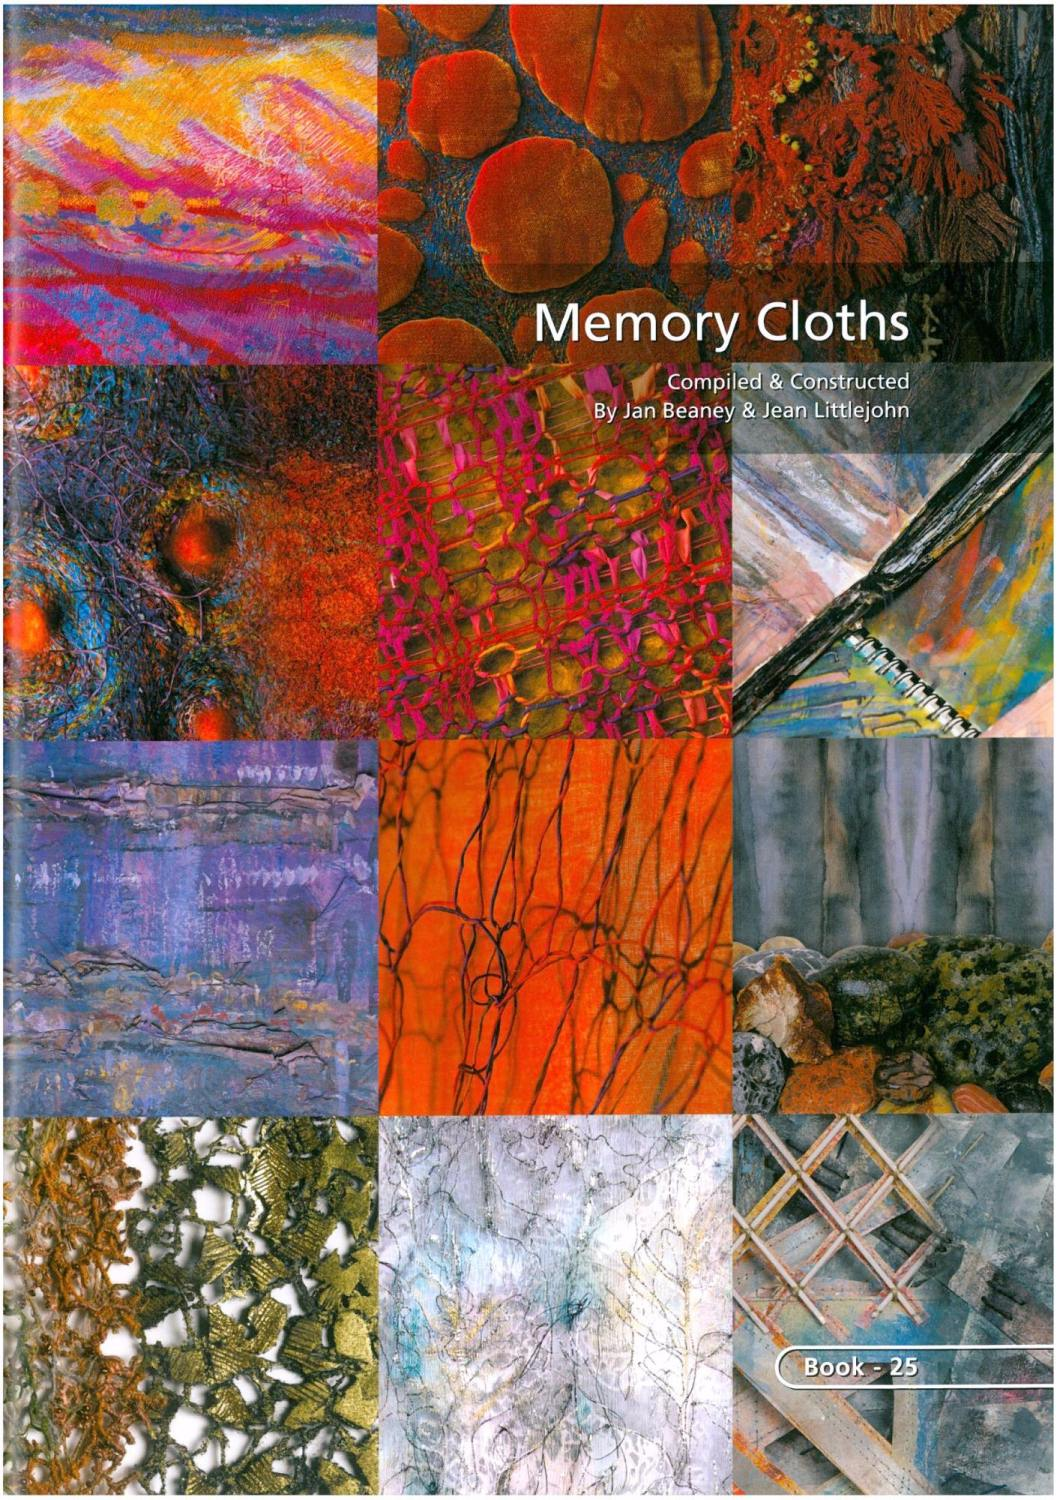 BOOK 25 - MEMORY CLOTHS – COMPILED AND CONSTRUCTED. By Jan Beaney and Jean